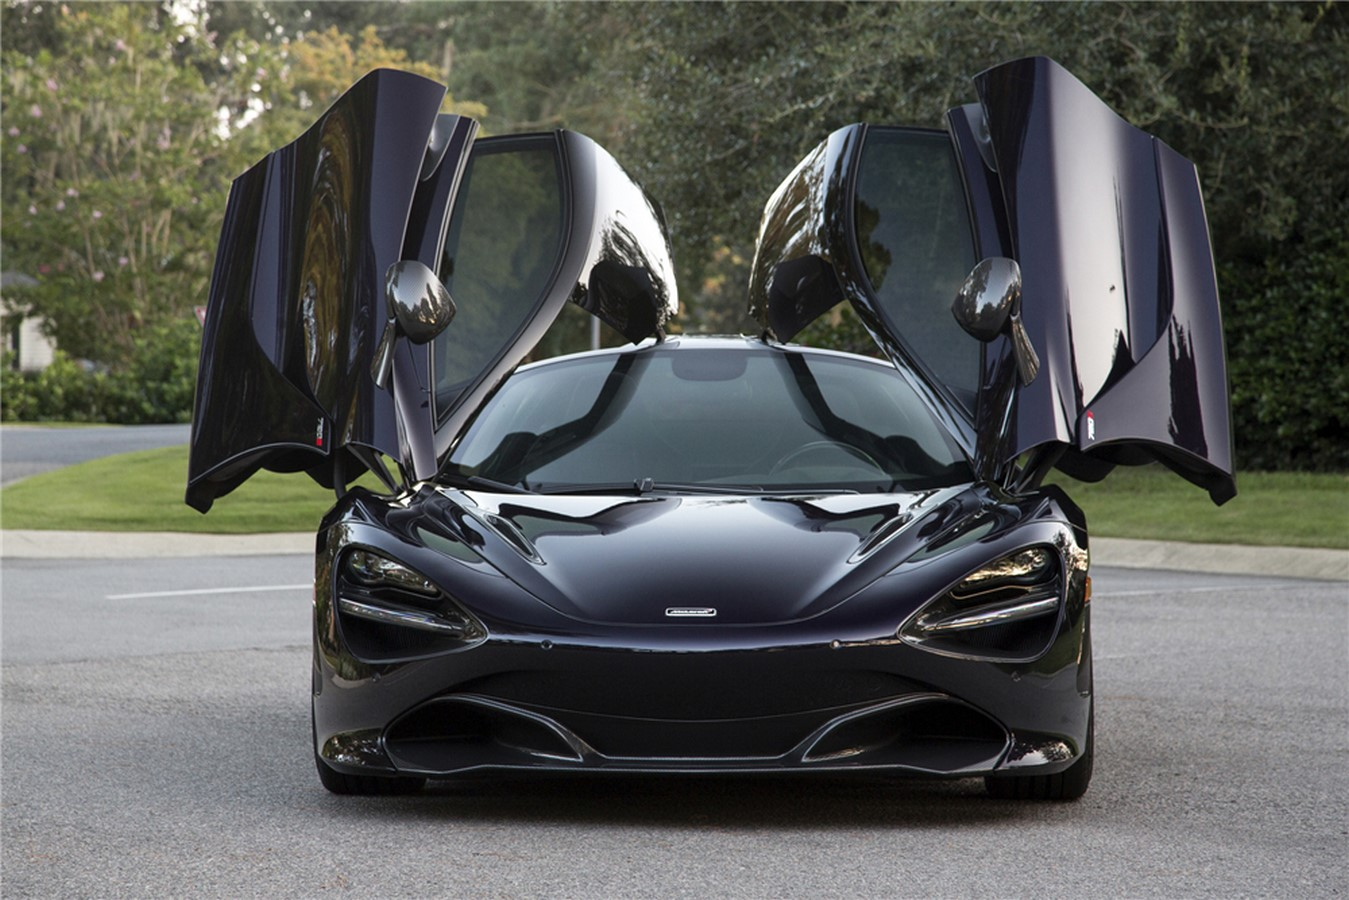 Top 10 Automobile Designs Inspired by Sci-Fi Movies and TV Sheet6